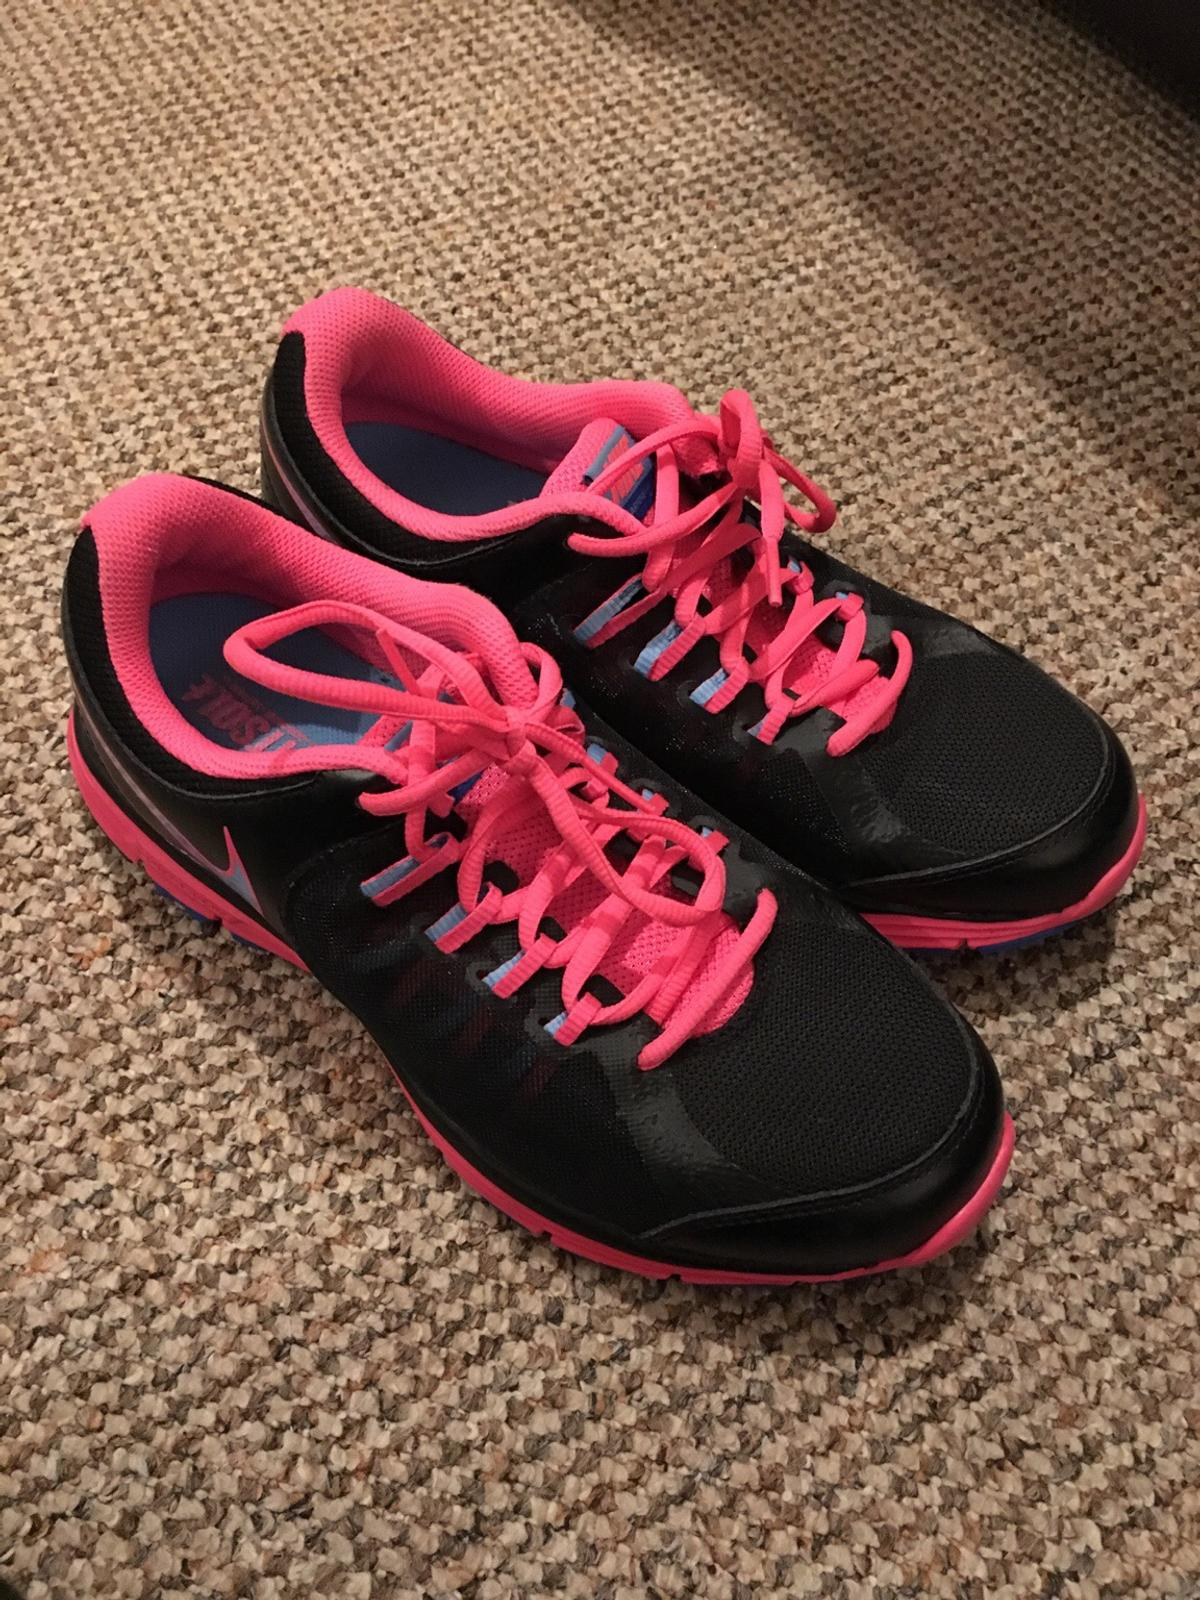 new arrival 5d3ec 7ae4f Nike fitsole women's trainers size 6